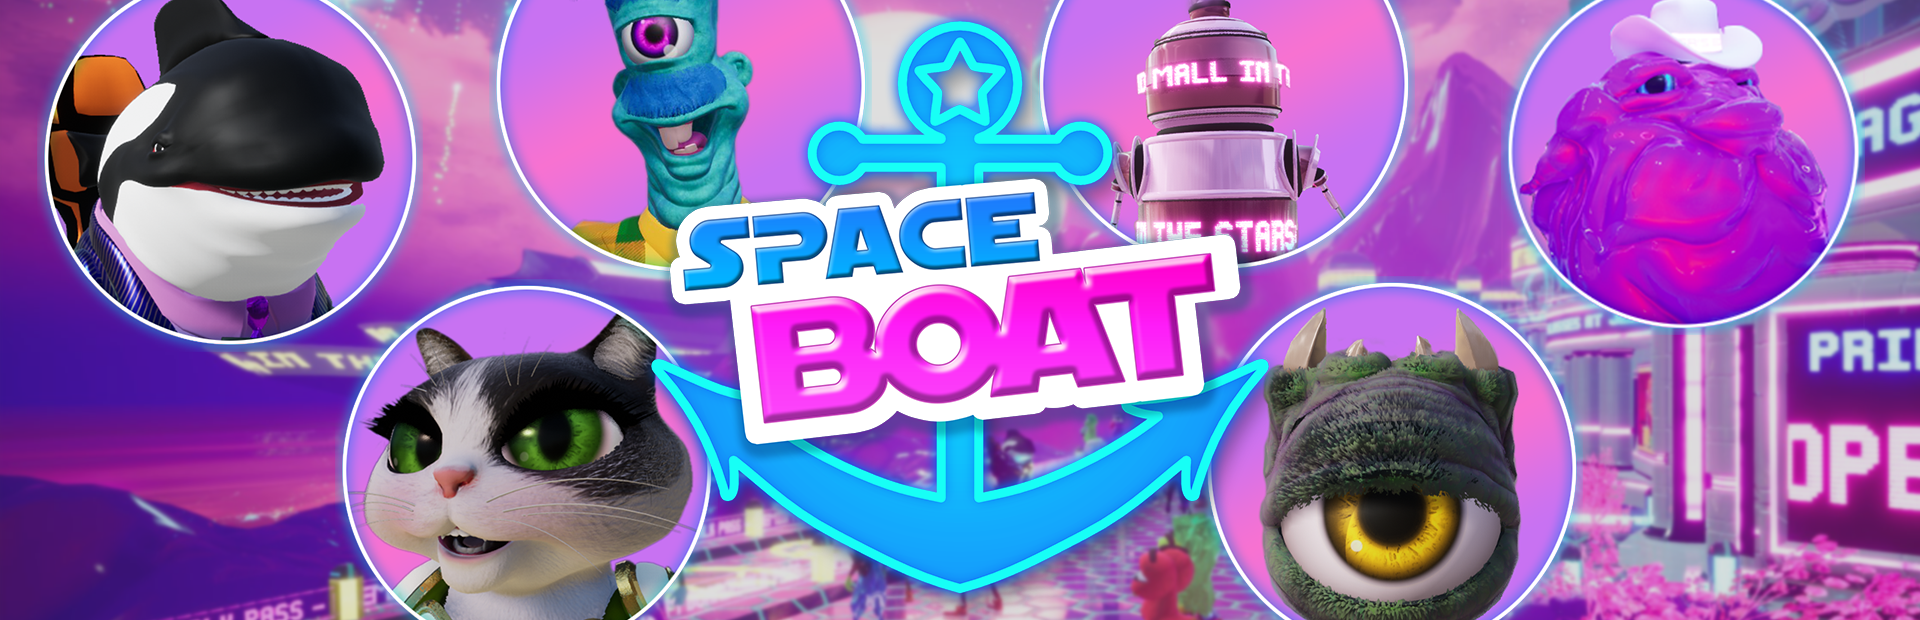 Space Boat - Demo